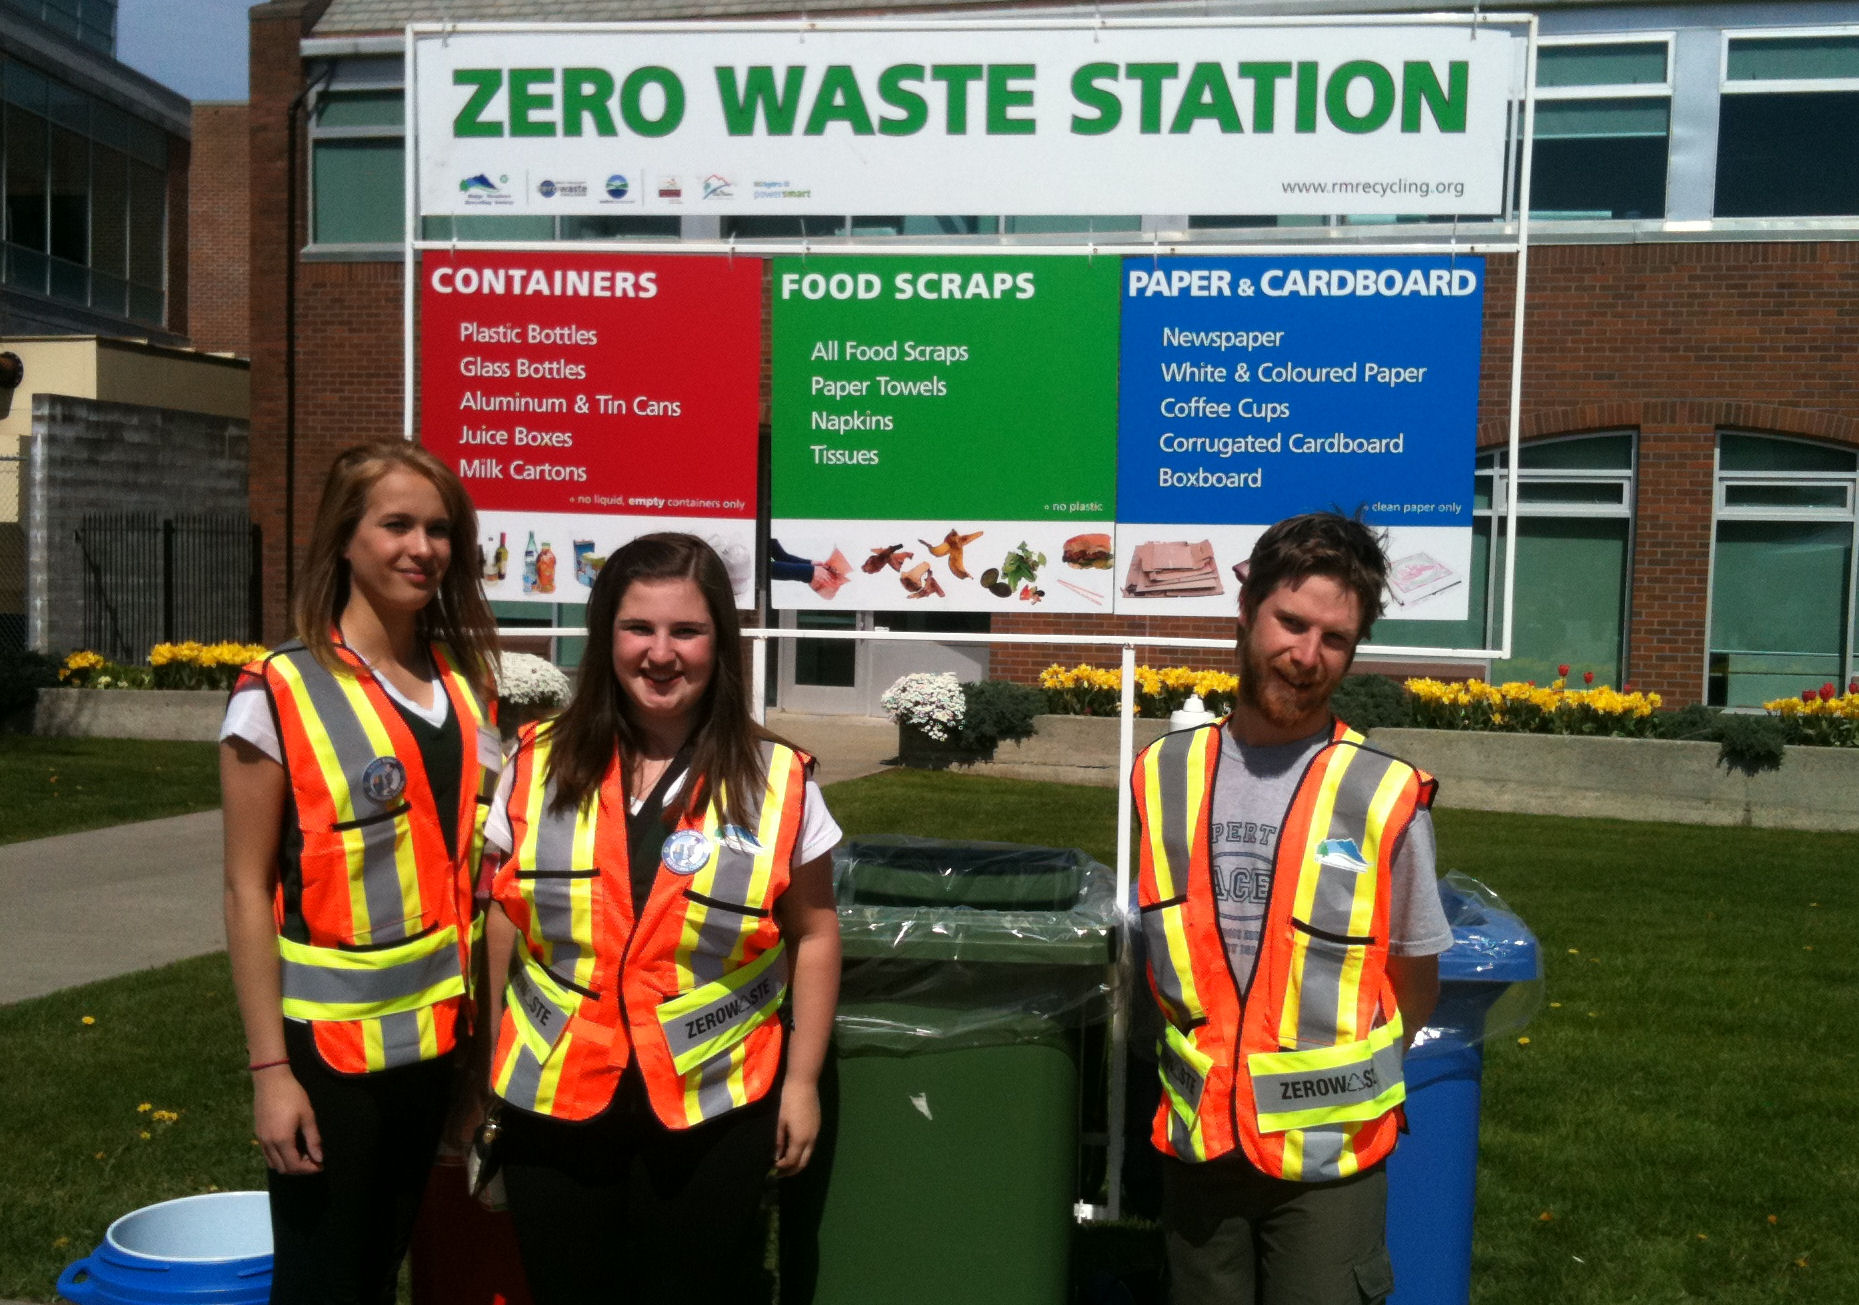 Zero Waste Station pilot at Earth Day 2012